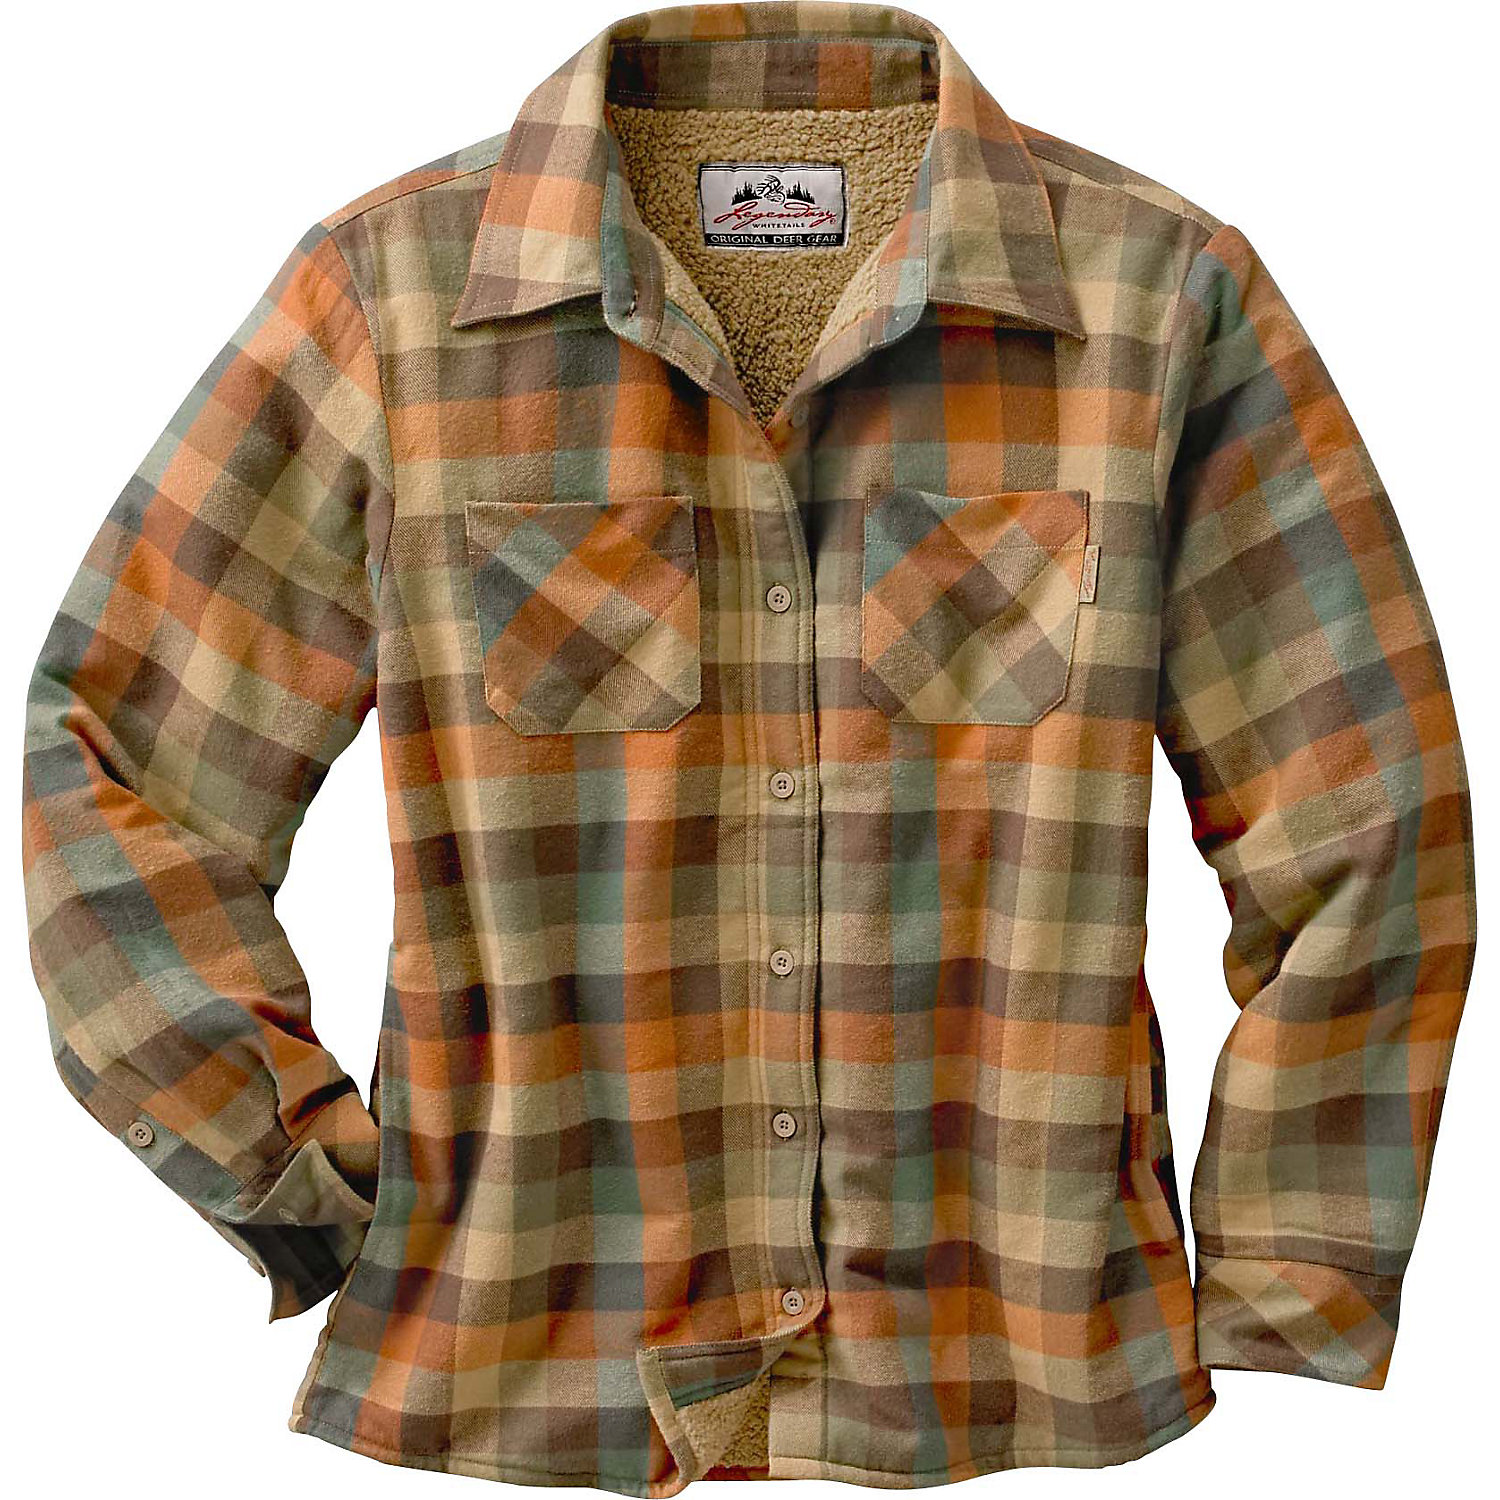 Womens country jackets